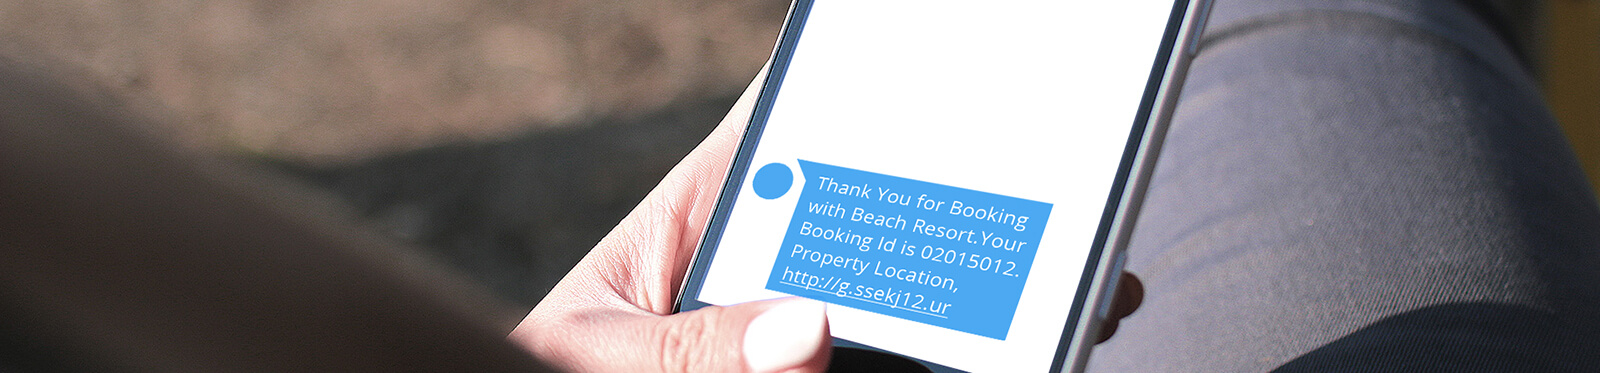 SMS on booking